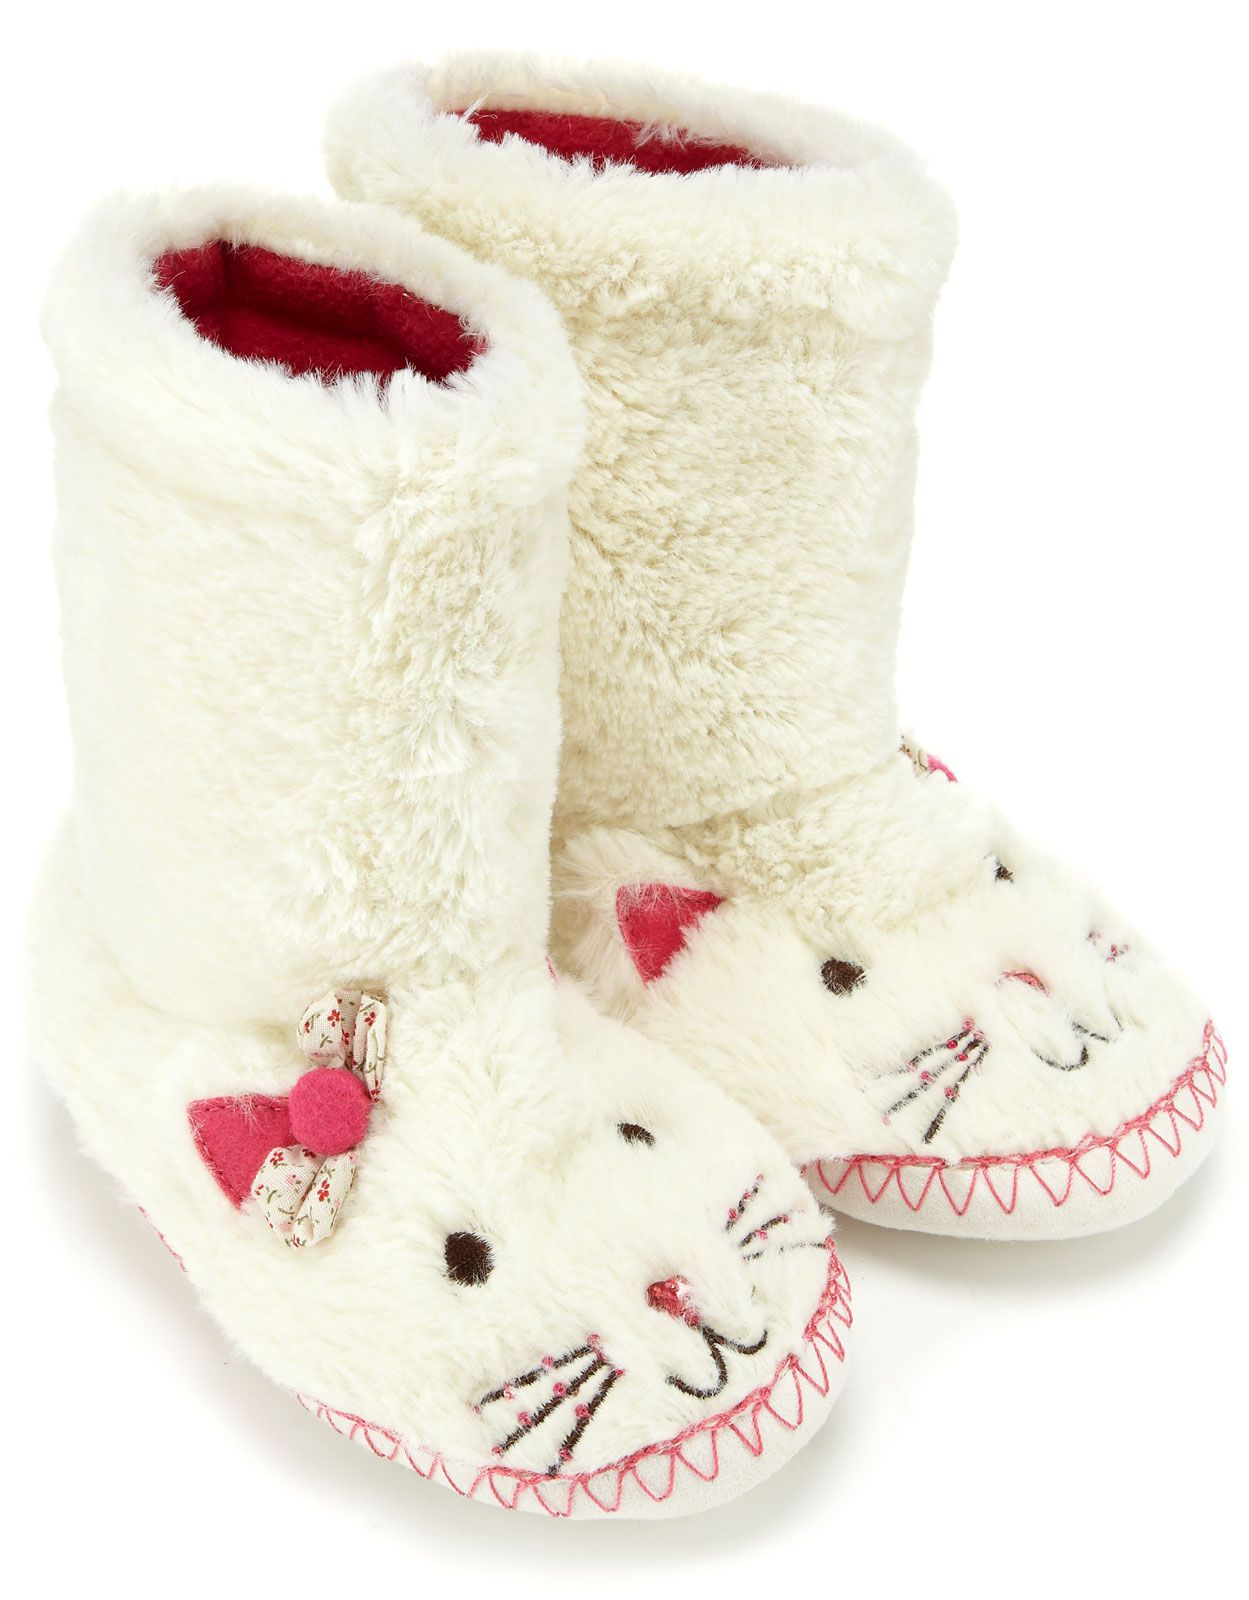 d6e16a2ea16 Supersoft Cat Slipper Boots in Cream They Have A Bow!